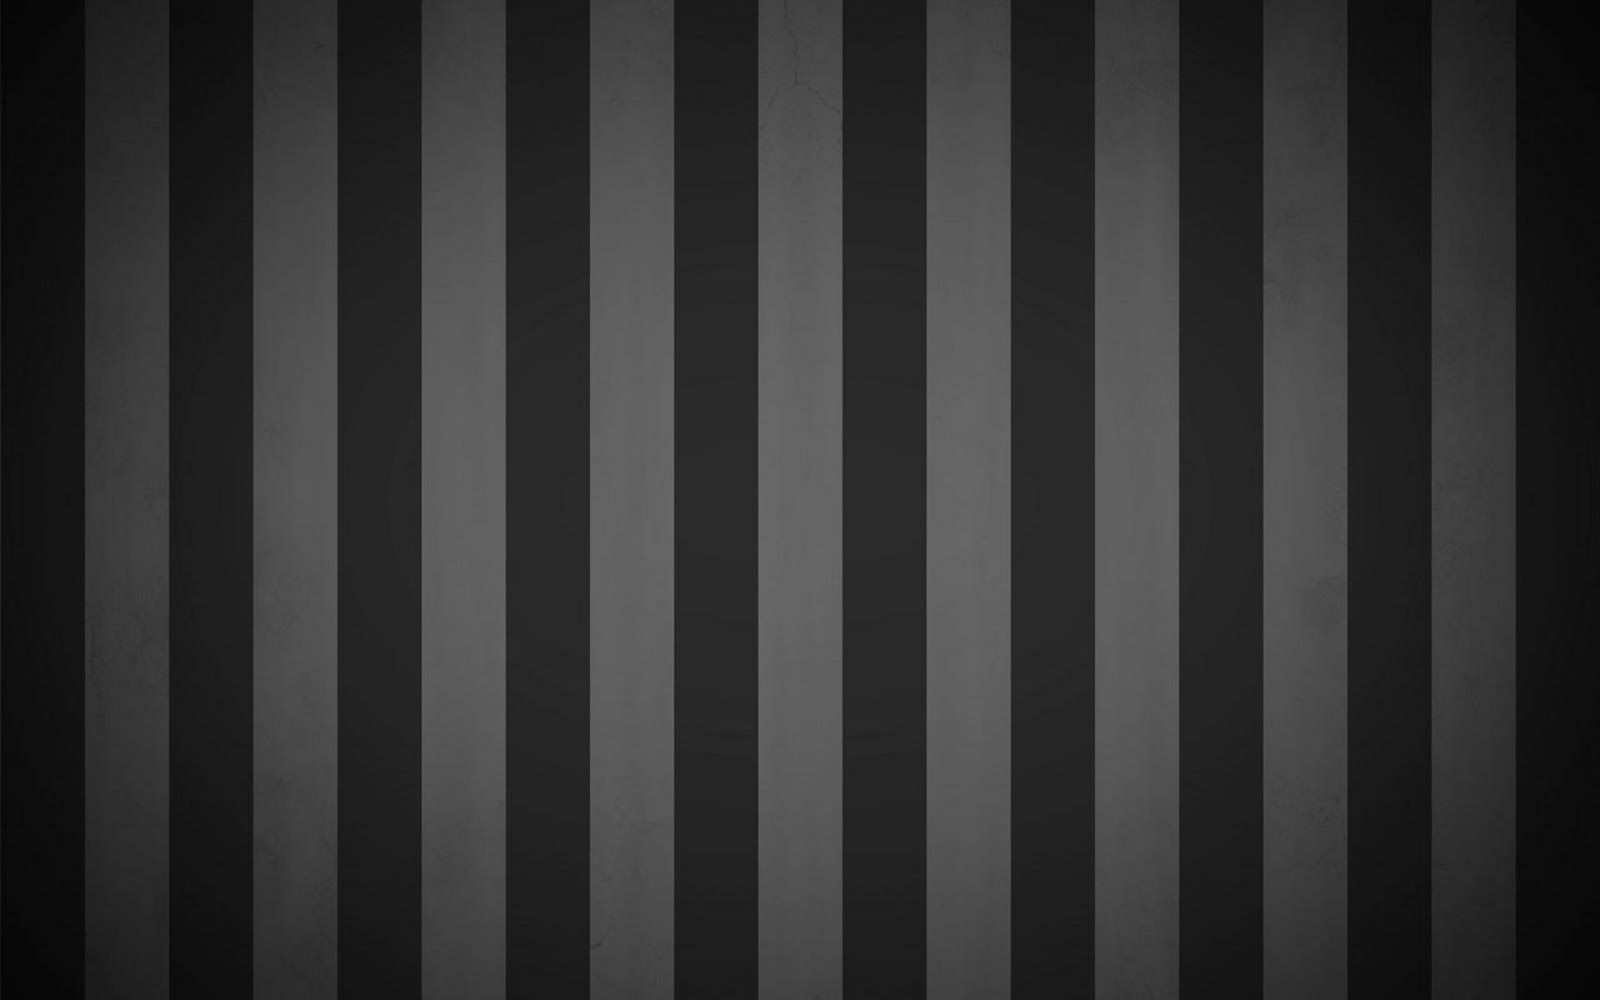 Striped hd black grey pattern hd wallpapers wallpaper for Black and grey wallpaper designs